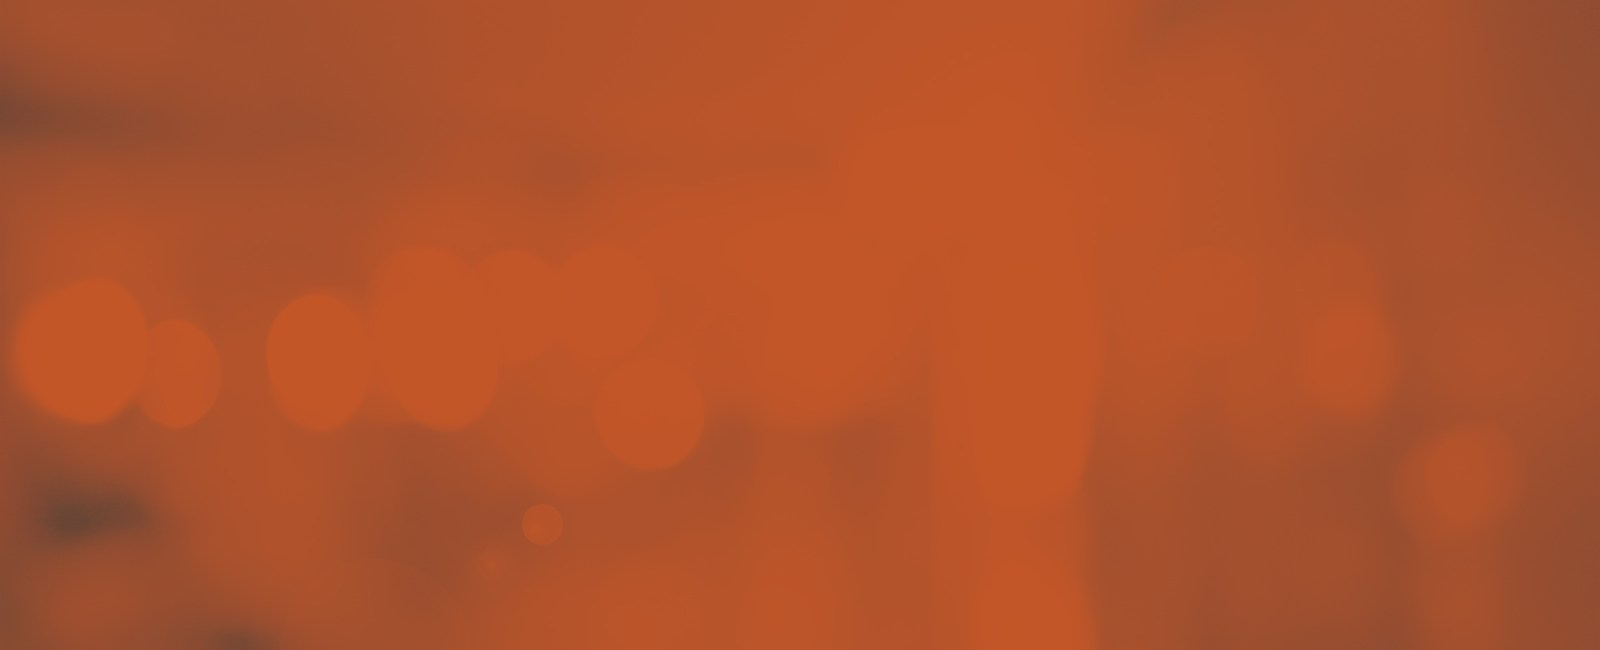 orange banner background